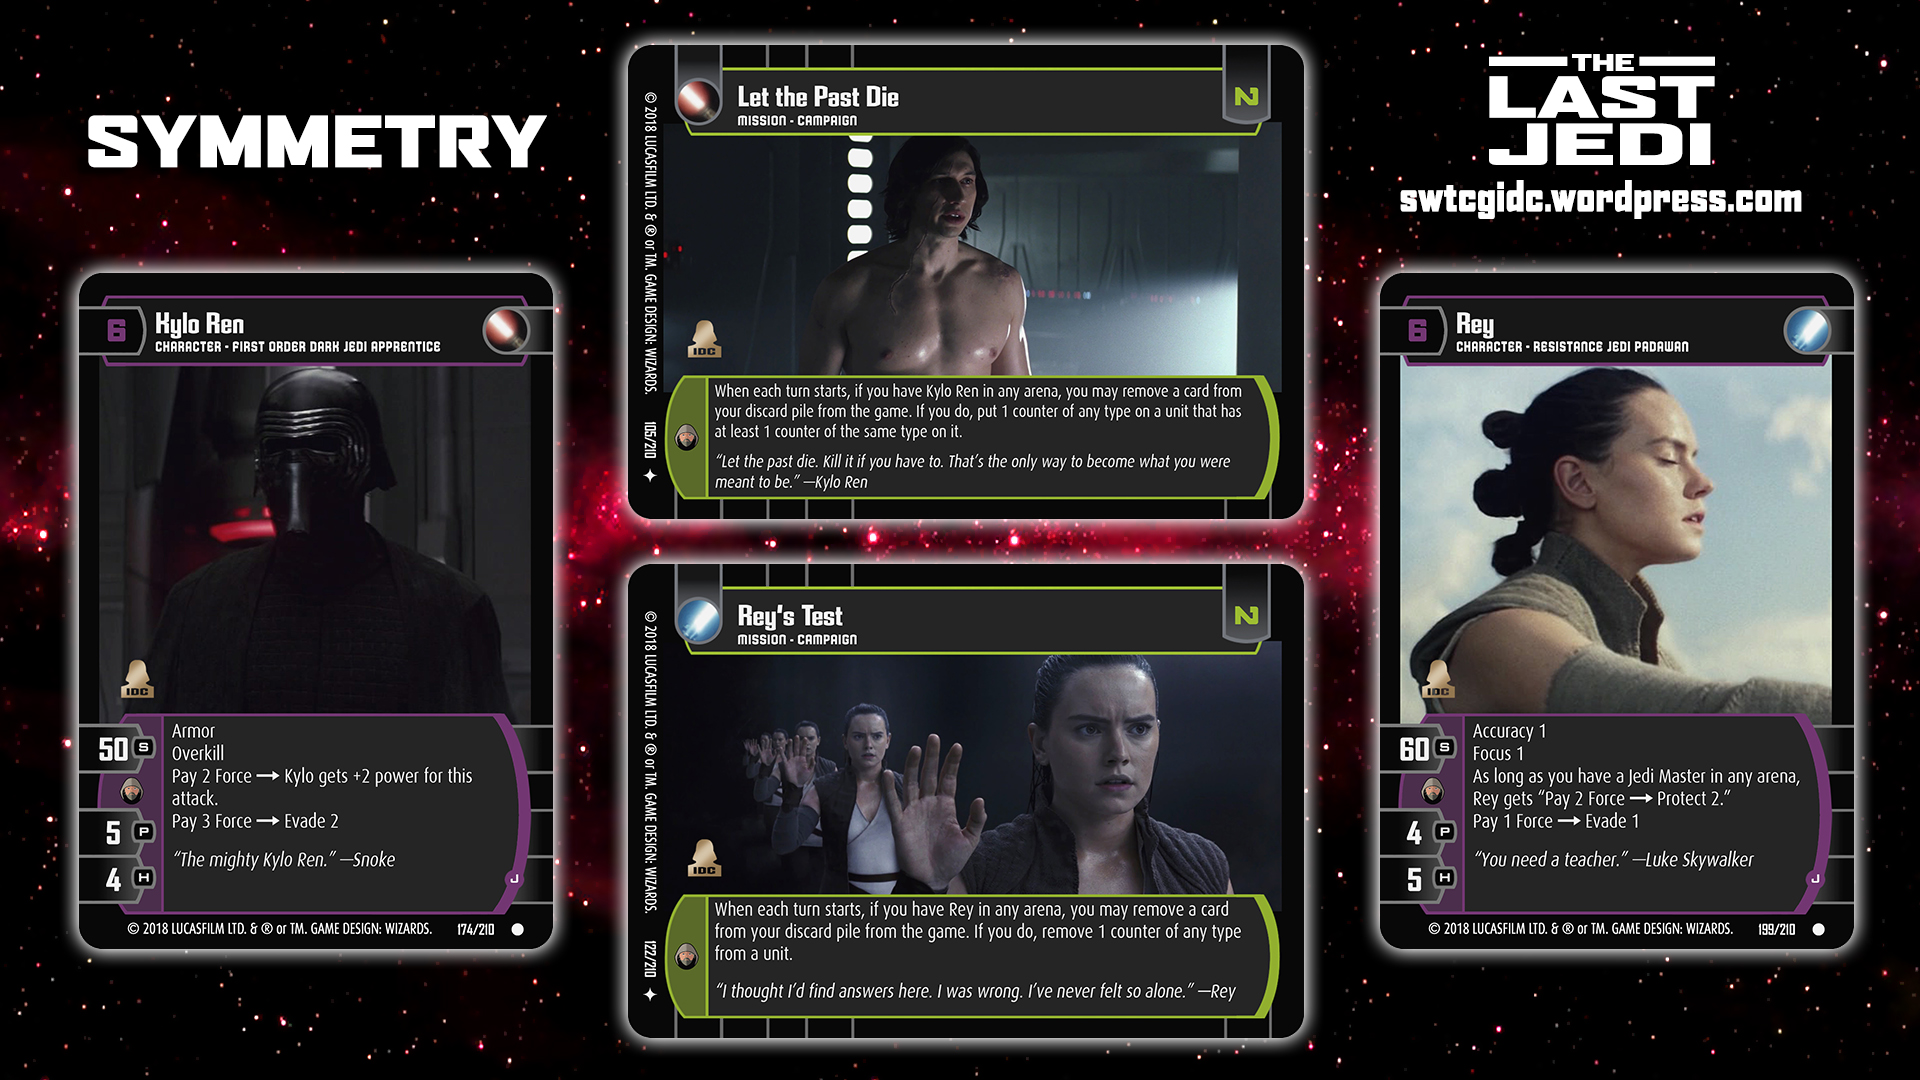 Star Wars Trading Card Game Tlj Wallpaper 6 Symmetry Star Wars Trading Card Game Independent Development Committee